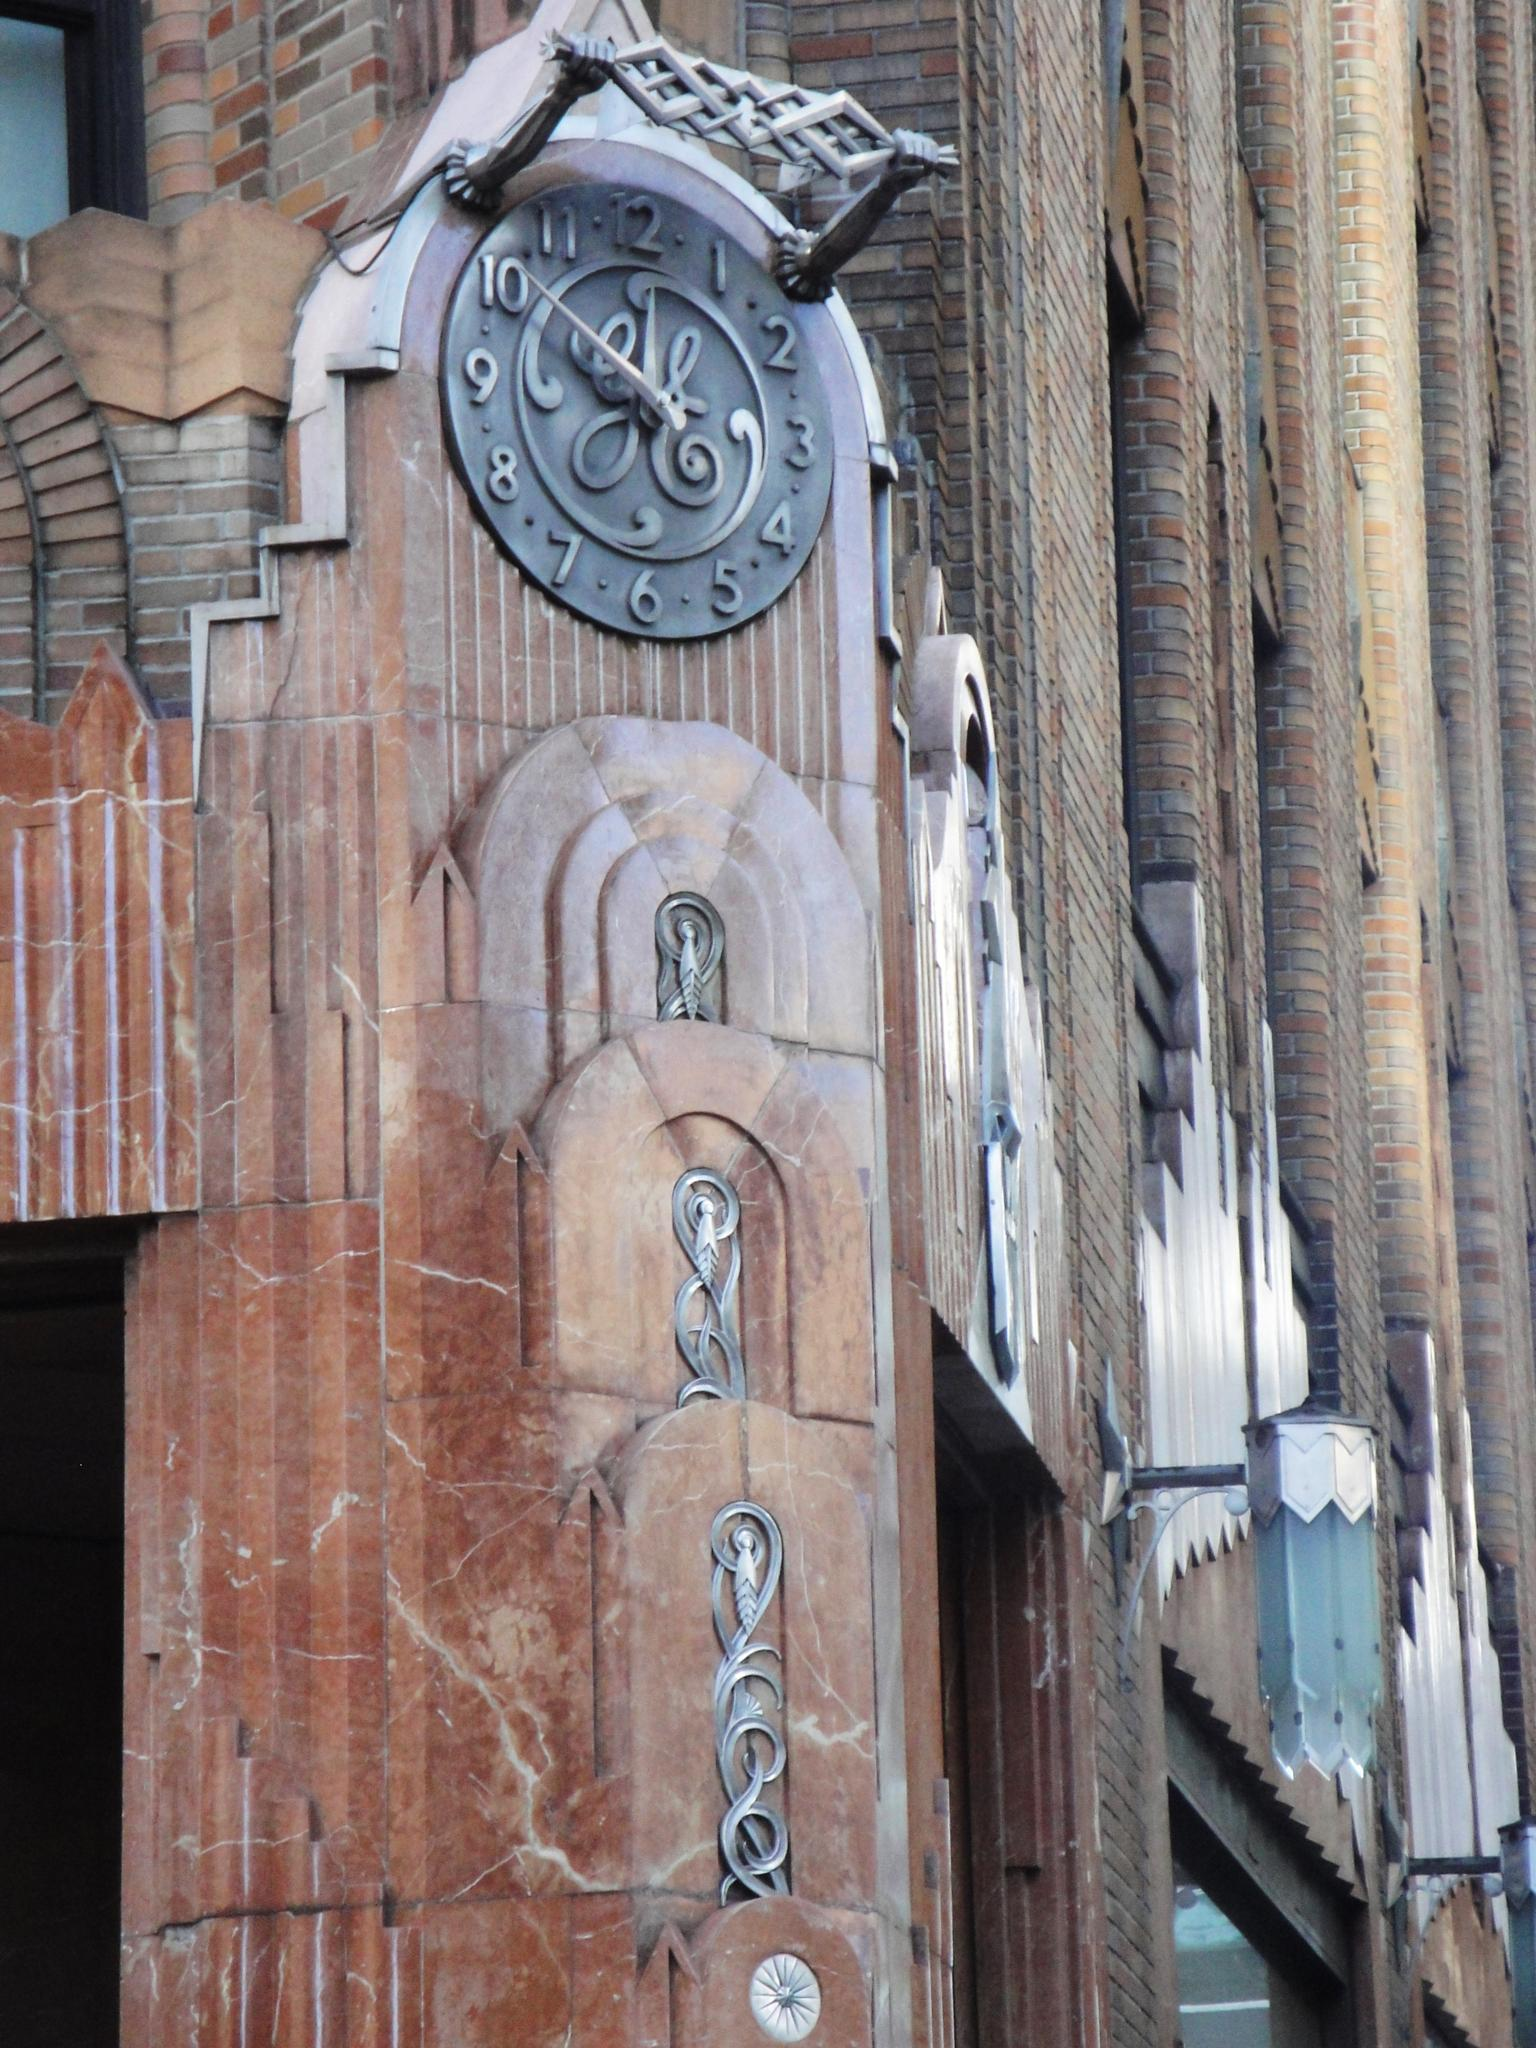 The Art Deco facade, The Beekman Tower Hotel, NYC by steve.talbot.180